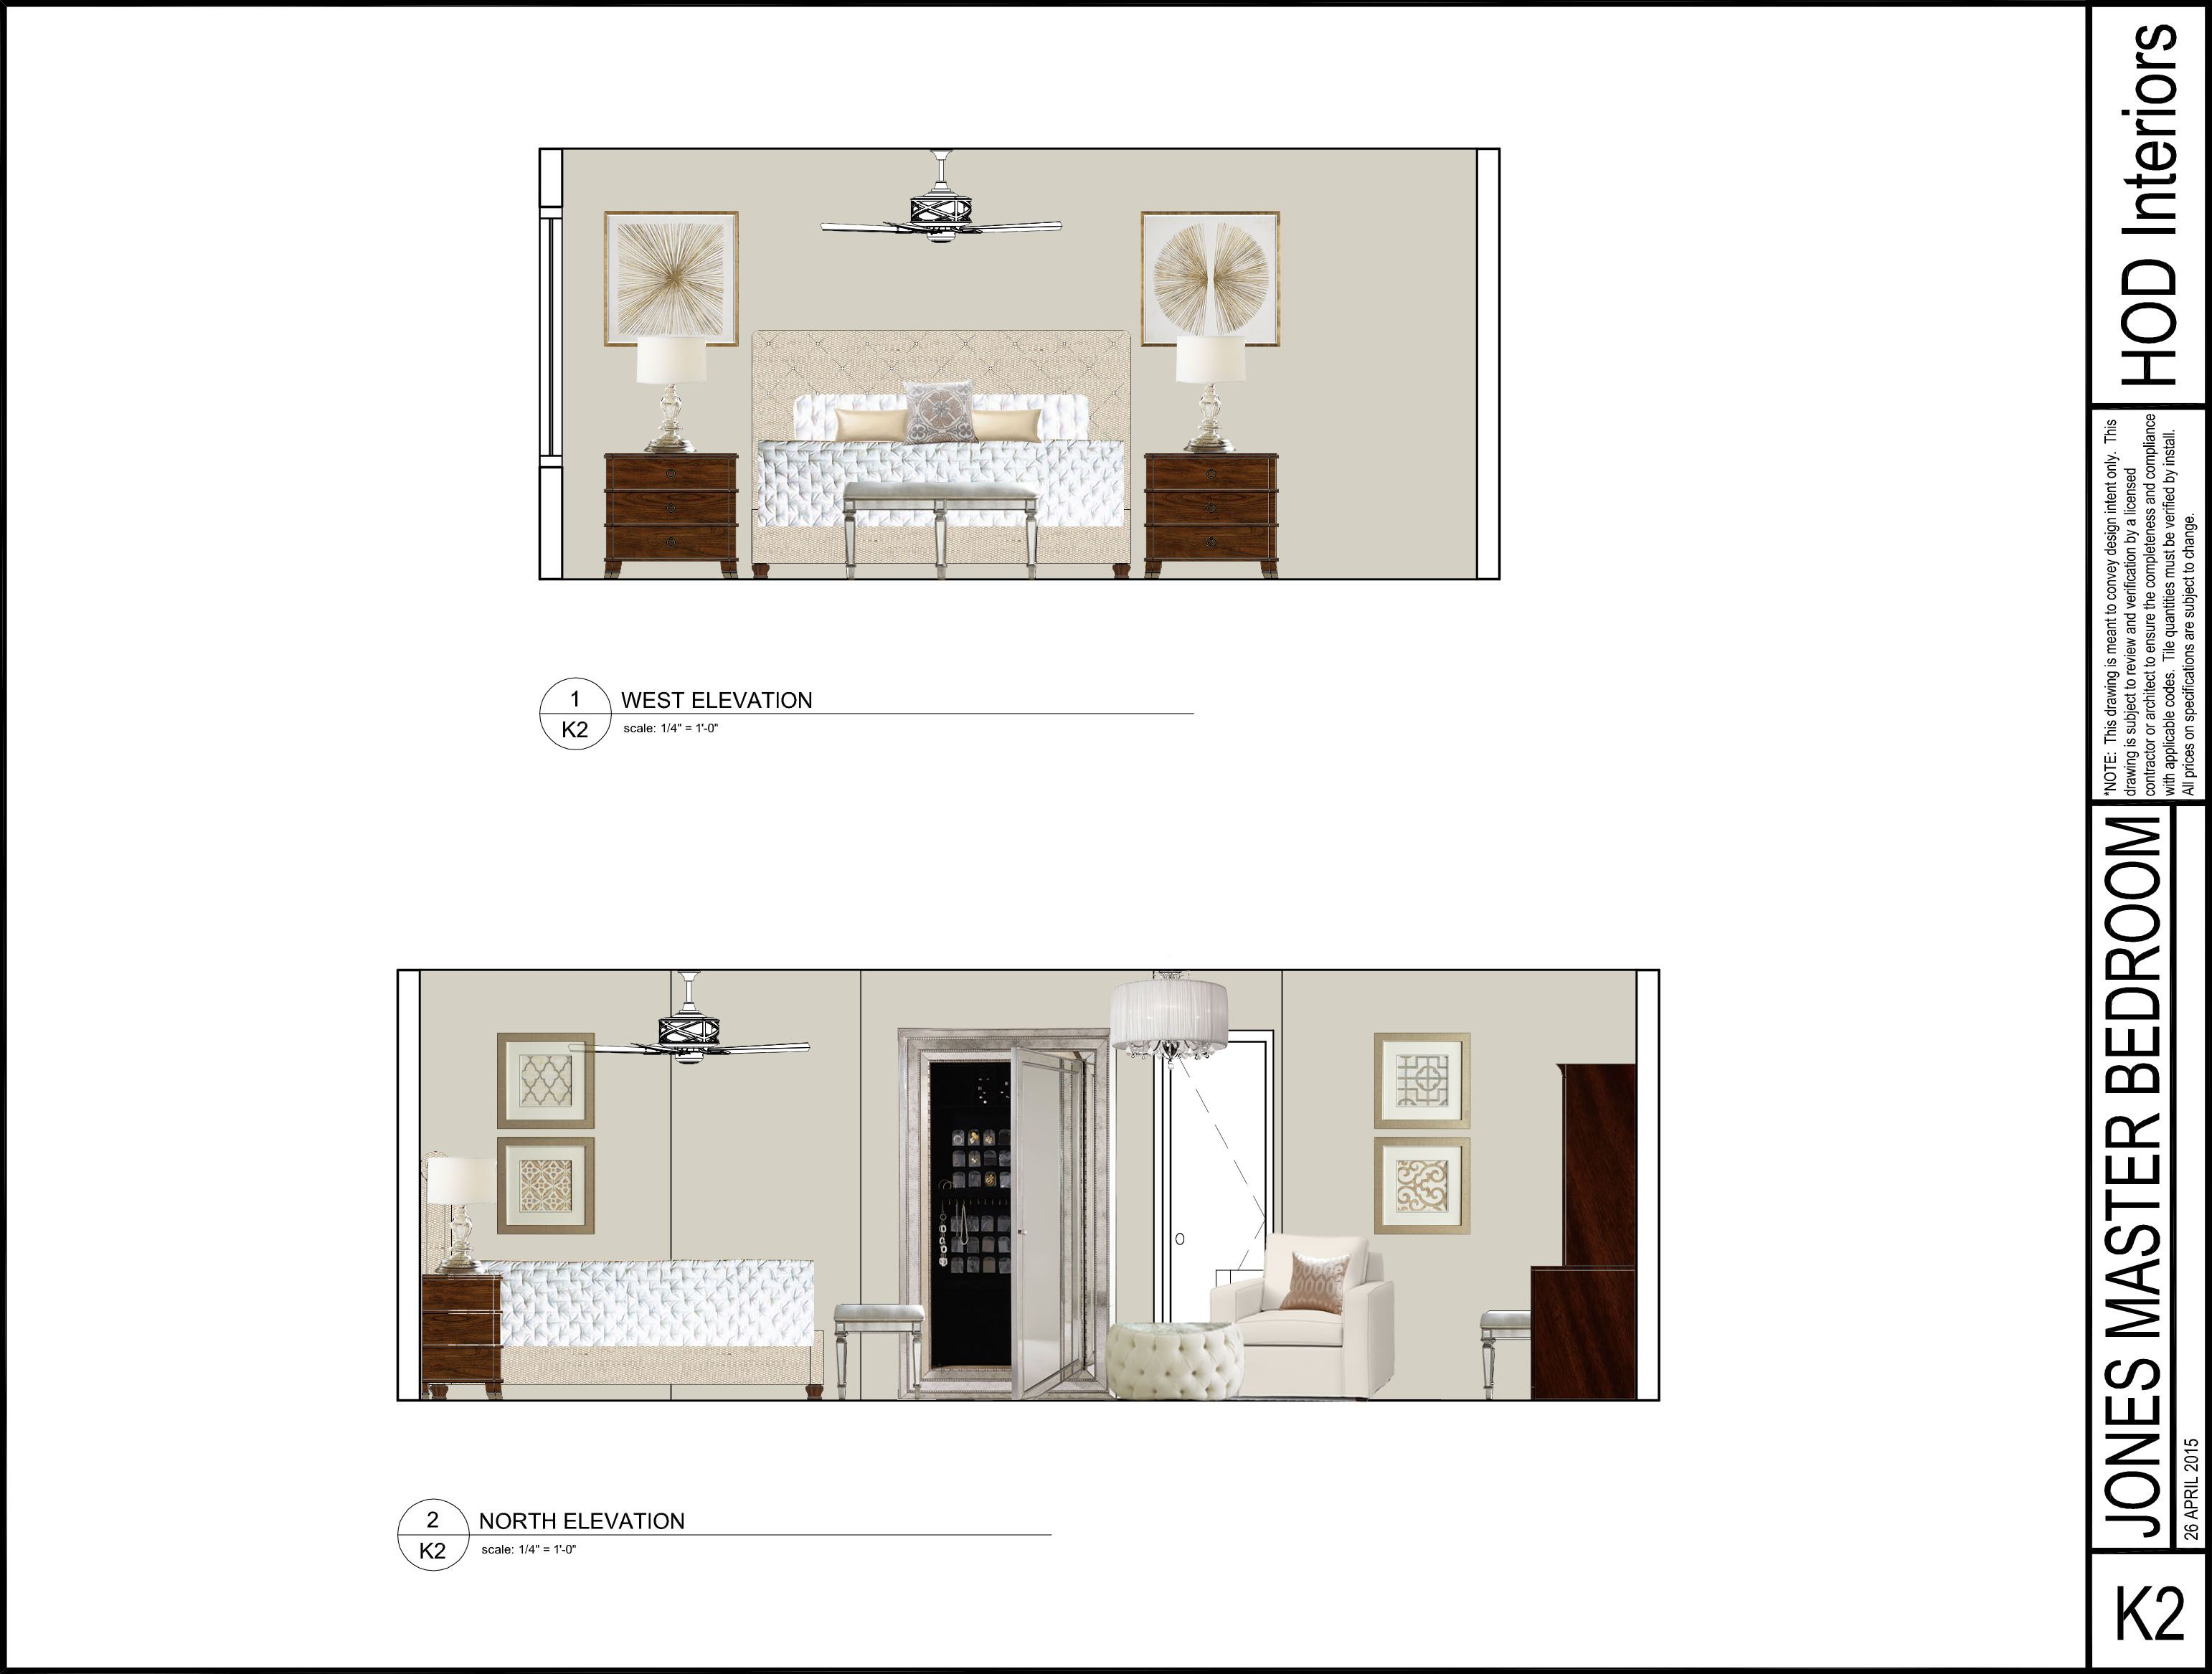 Photoshop Elevation Laura Jones Design Service Bedroom In 2019